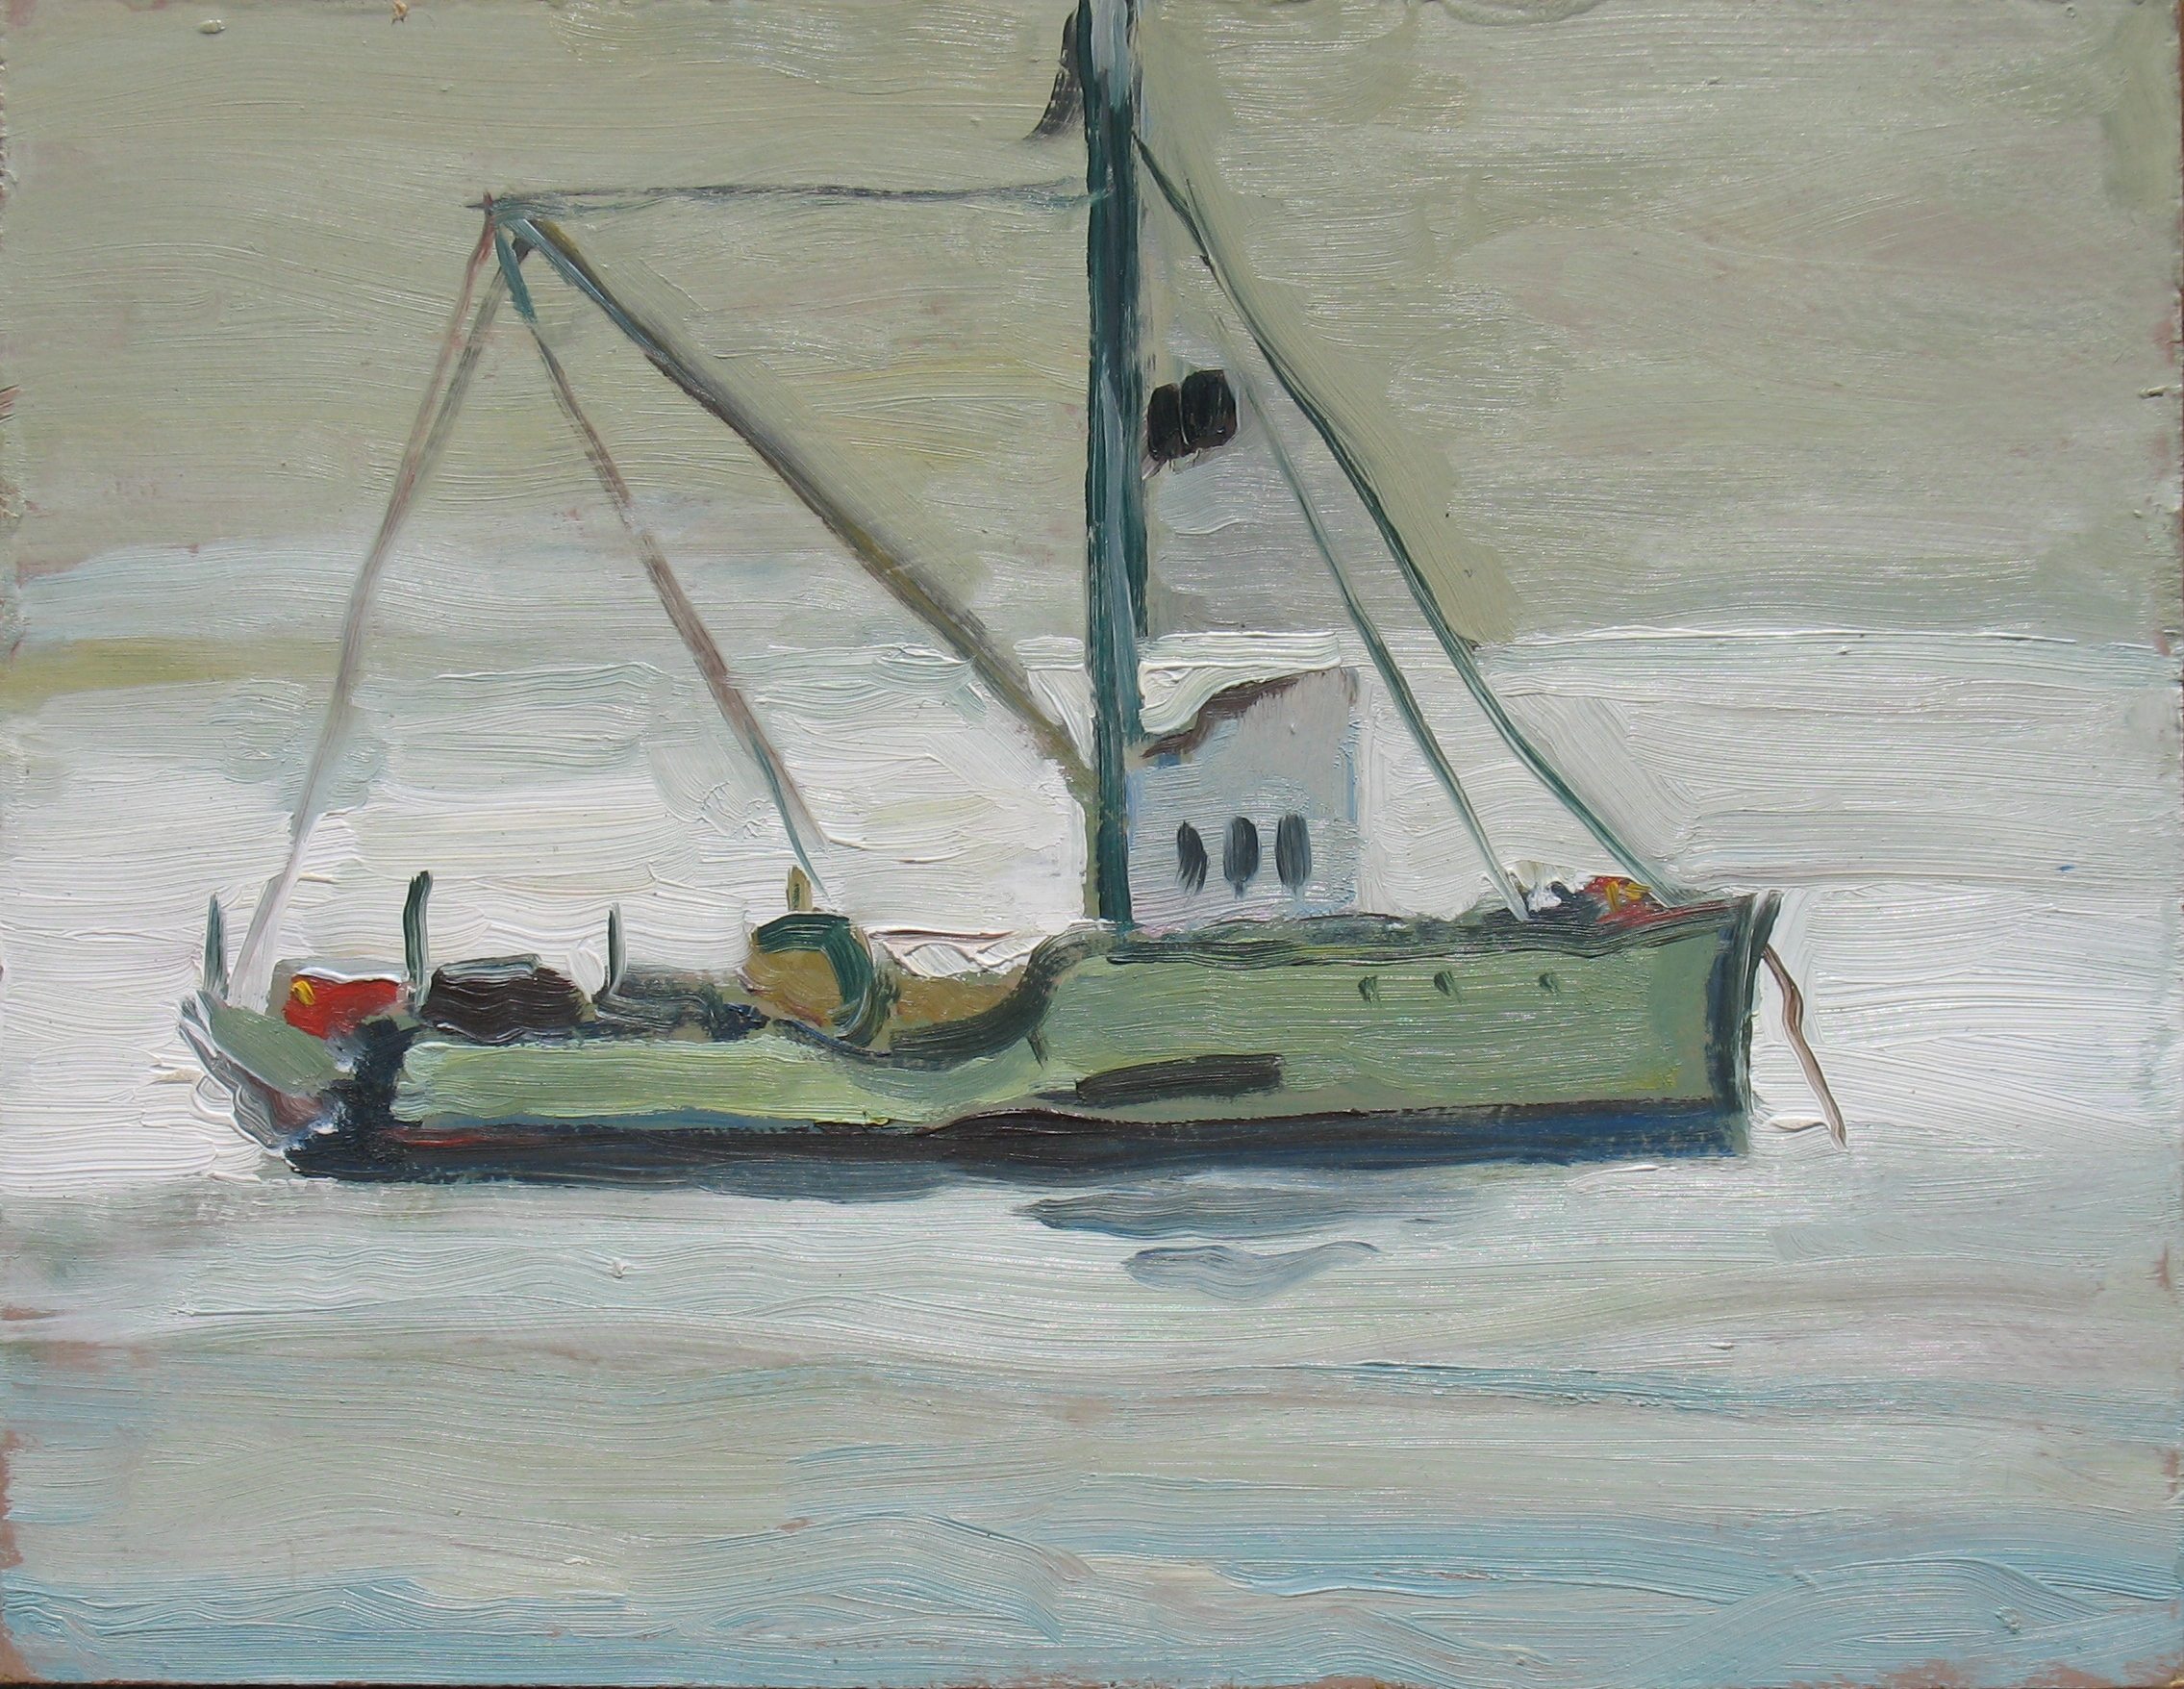 Morro Bay Fishing Boat Grey Fog, 7 x 9 inches, 2010 - UNAVAILABLE